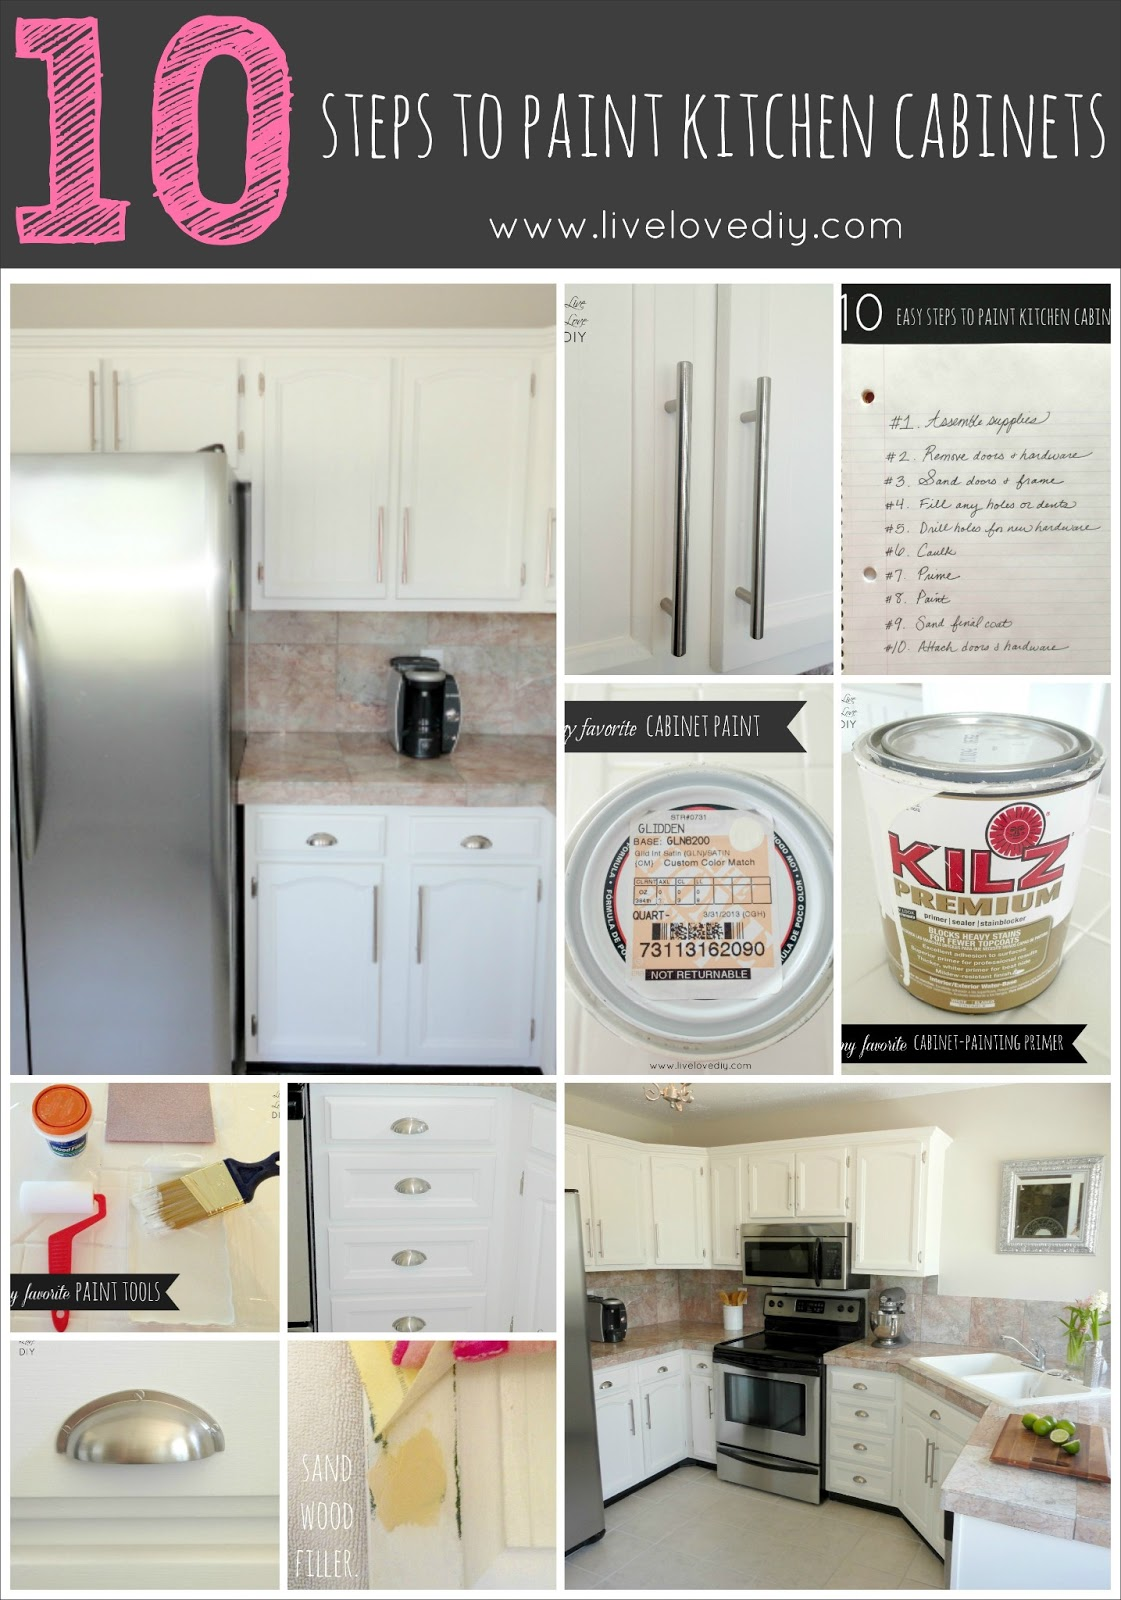 LiveLoveDIY How To Paint Kitchen Cabinets In Easy Steps - Best paint to use on kitchen cabinets